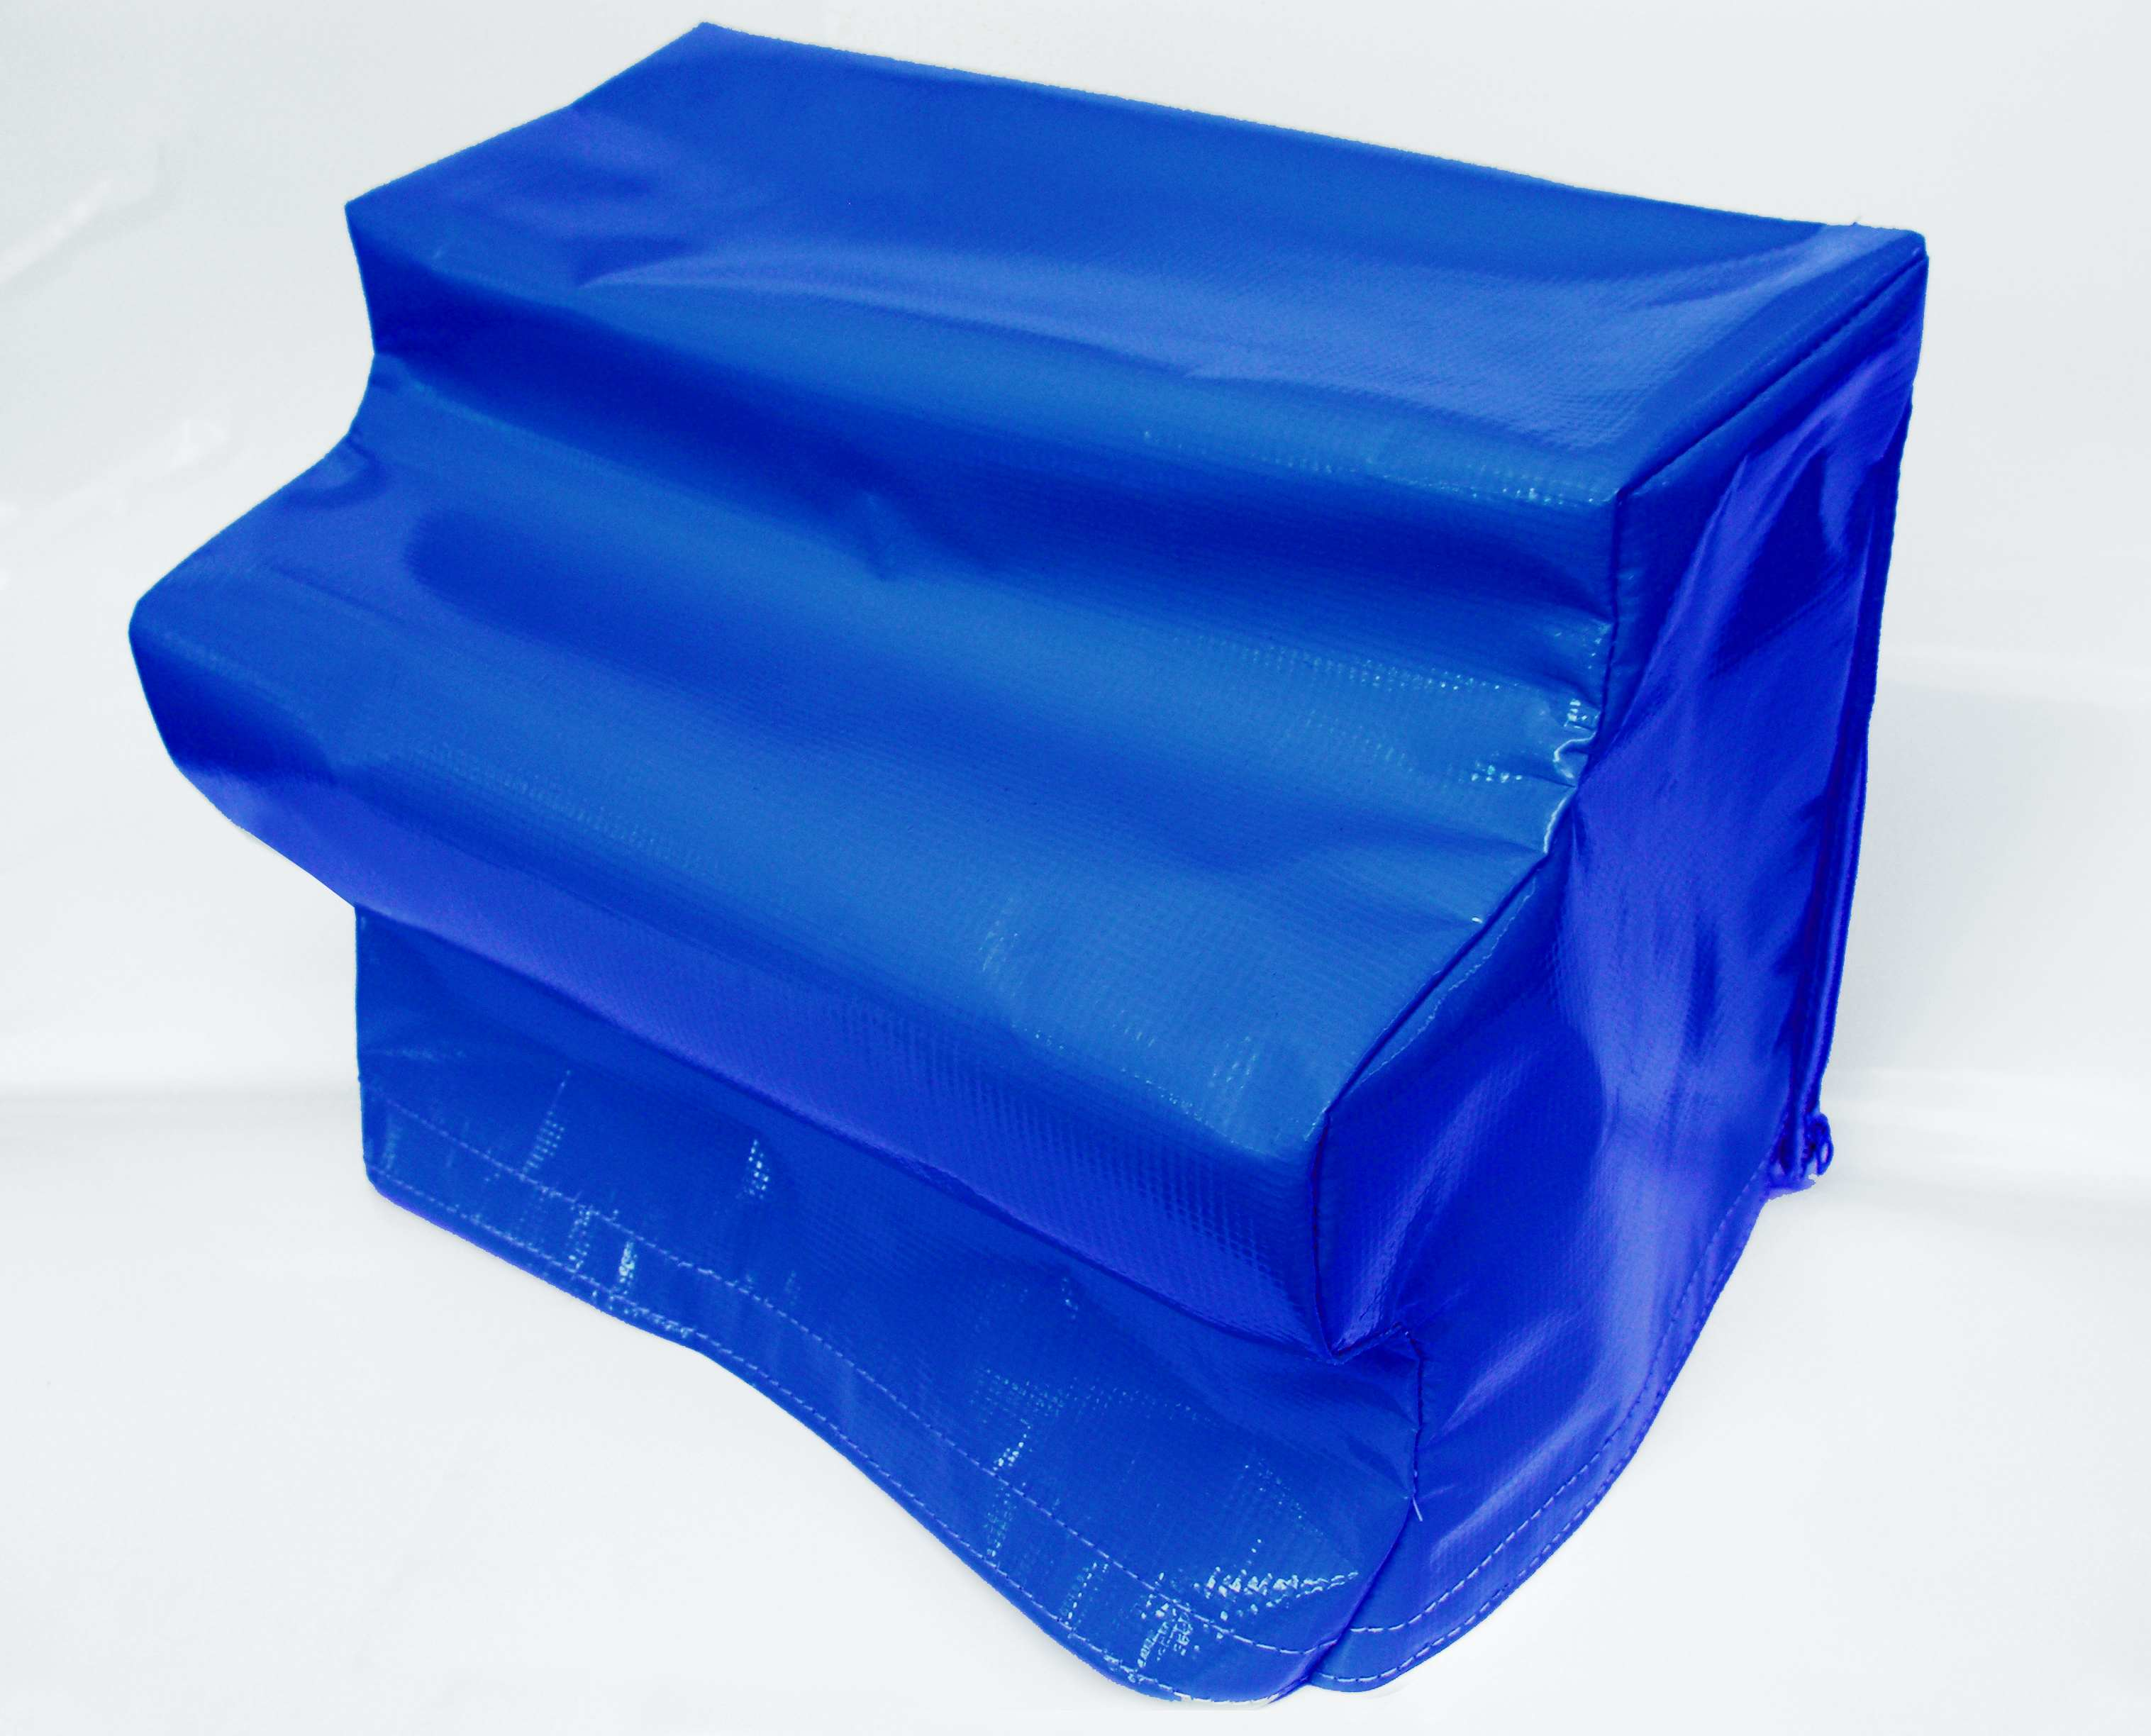 "VINYL COATED NYLON EQUIPMENT COVERS 60"" x 60"" x 36"""